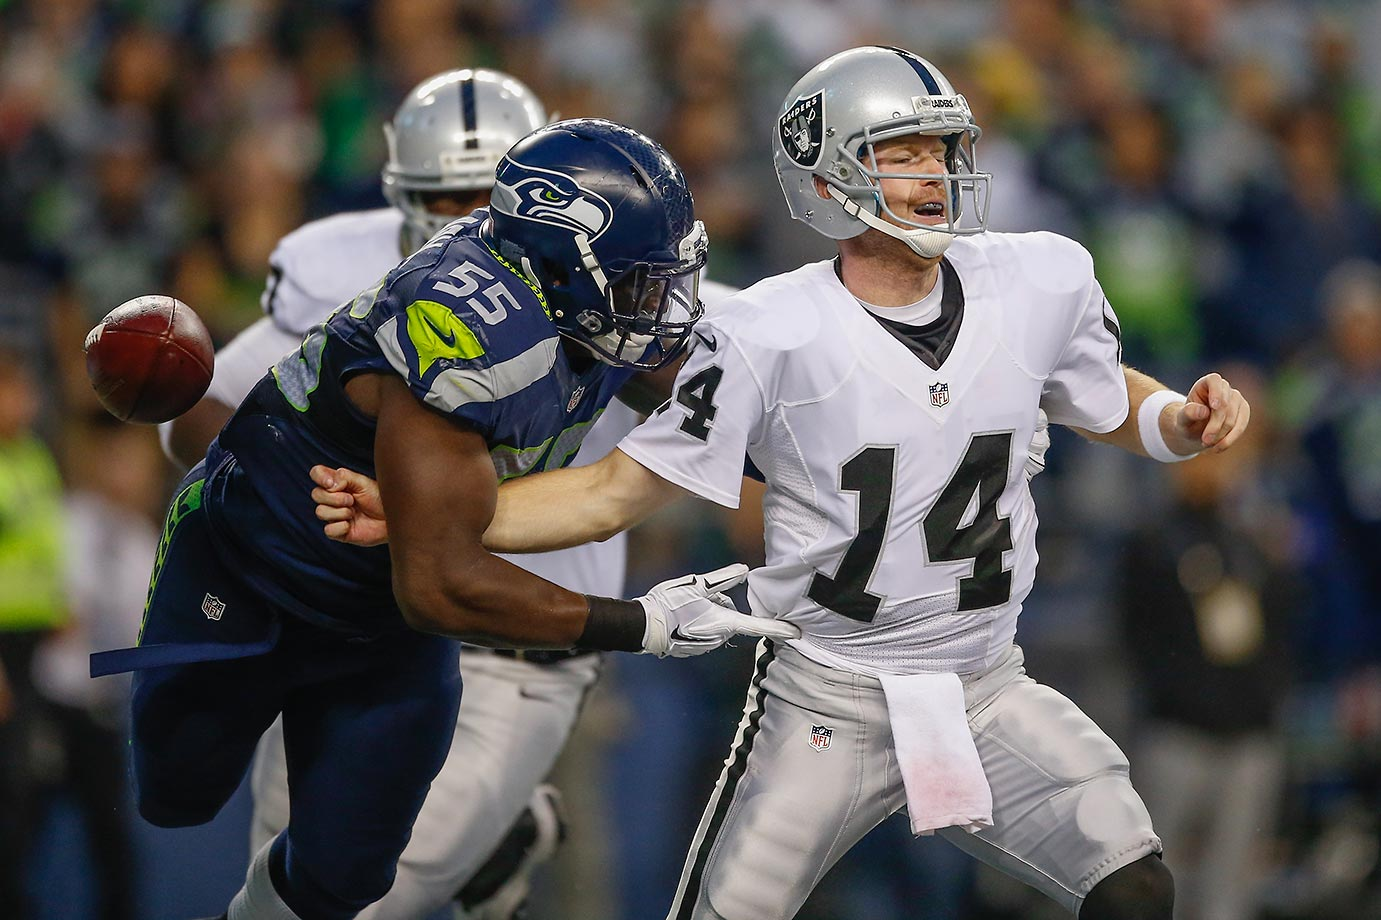 Matt McGloin is sacked in the endzone by defensive end Frank Clark.